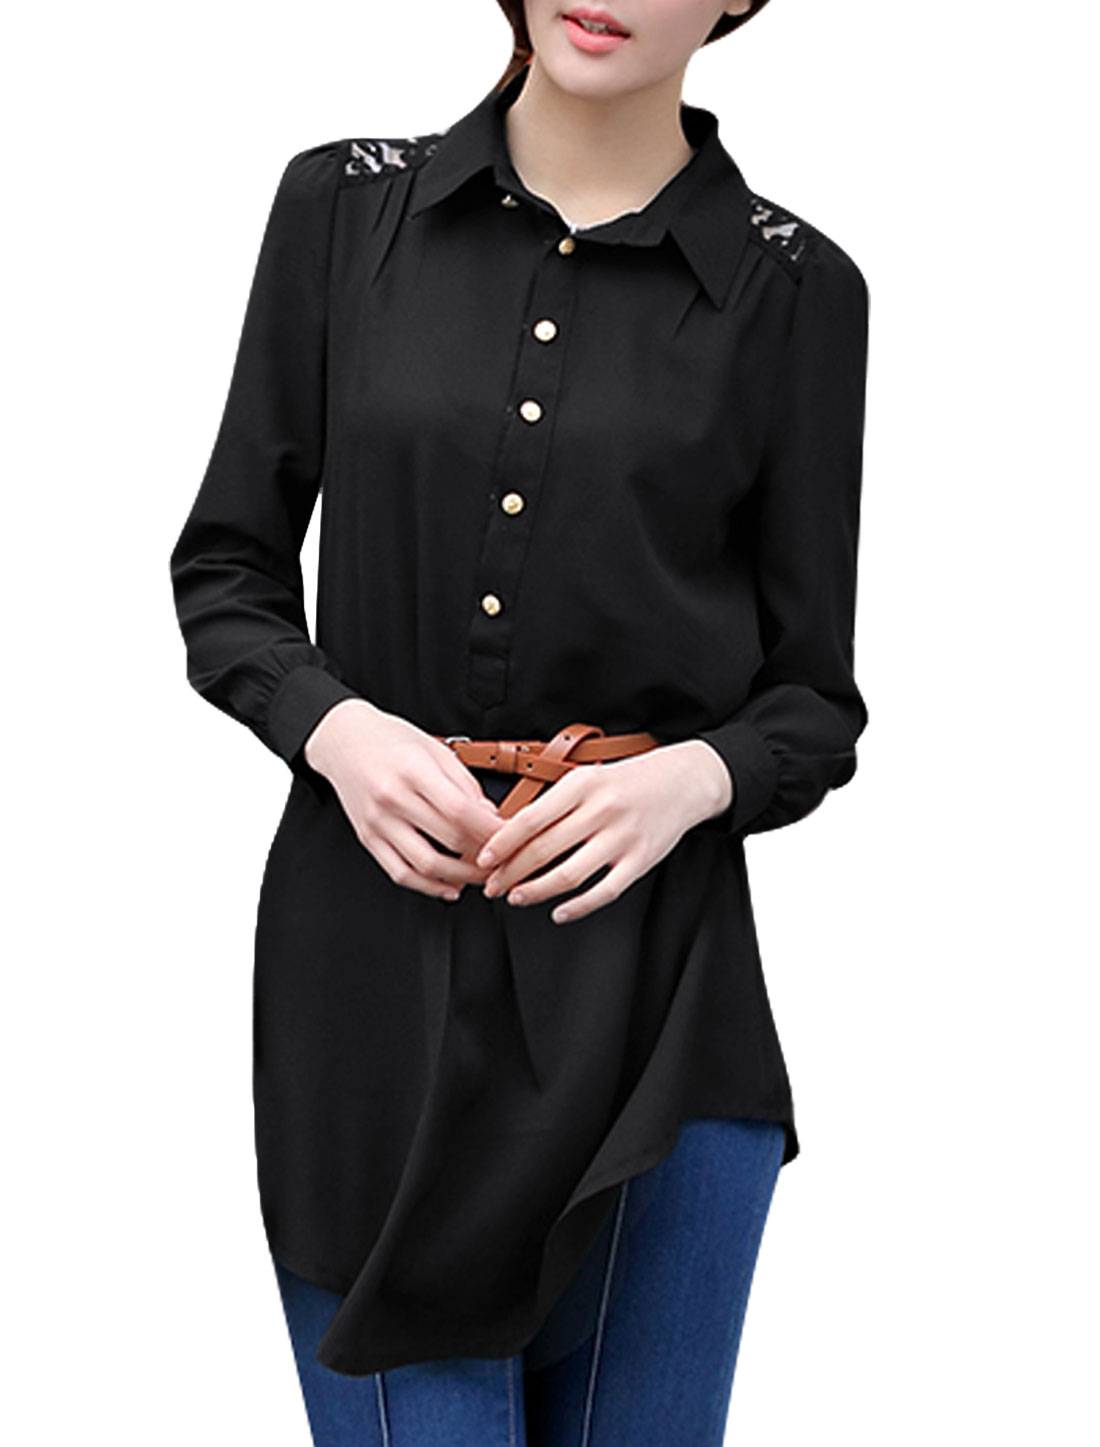 Woman Semi-Sheer 1/2 Placket Lace Spliced Back Shirt Dress w Belt Black L